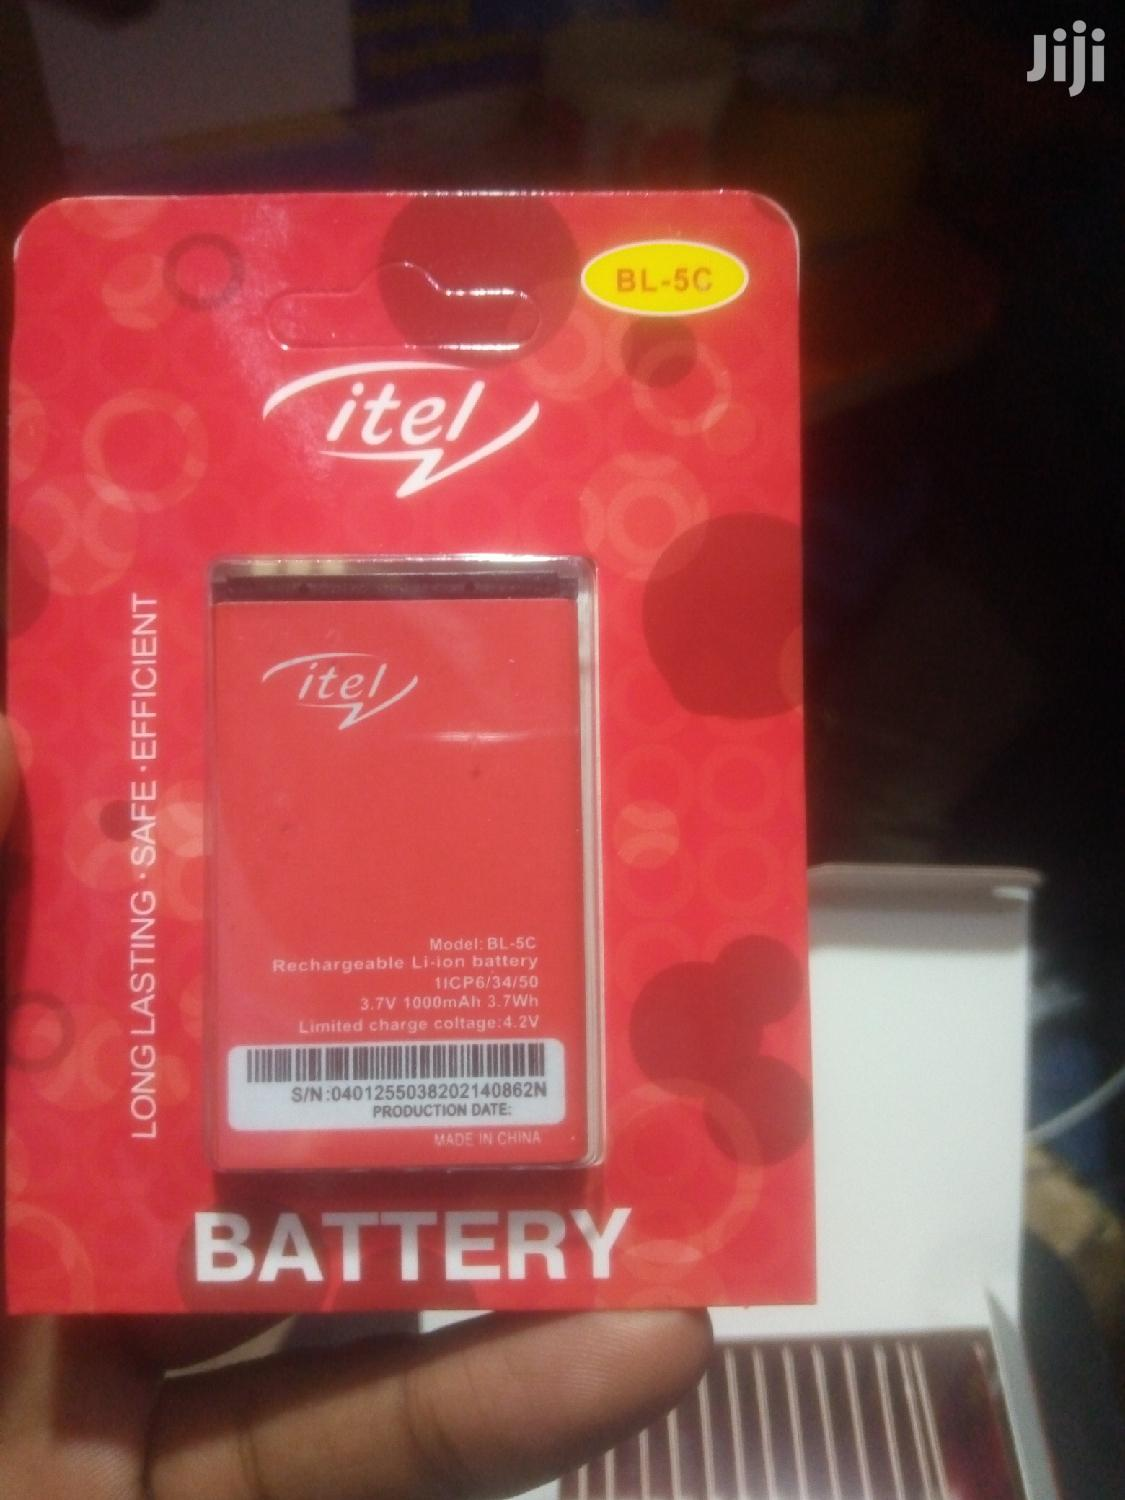 Itel/Tecno Batteries Wholesale Only | Accessories for Mobile Phones & Tablets for sale in Nairobi Central, Nairobi, Kenya